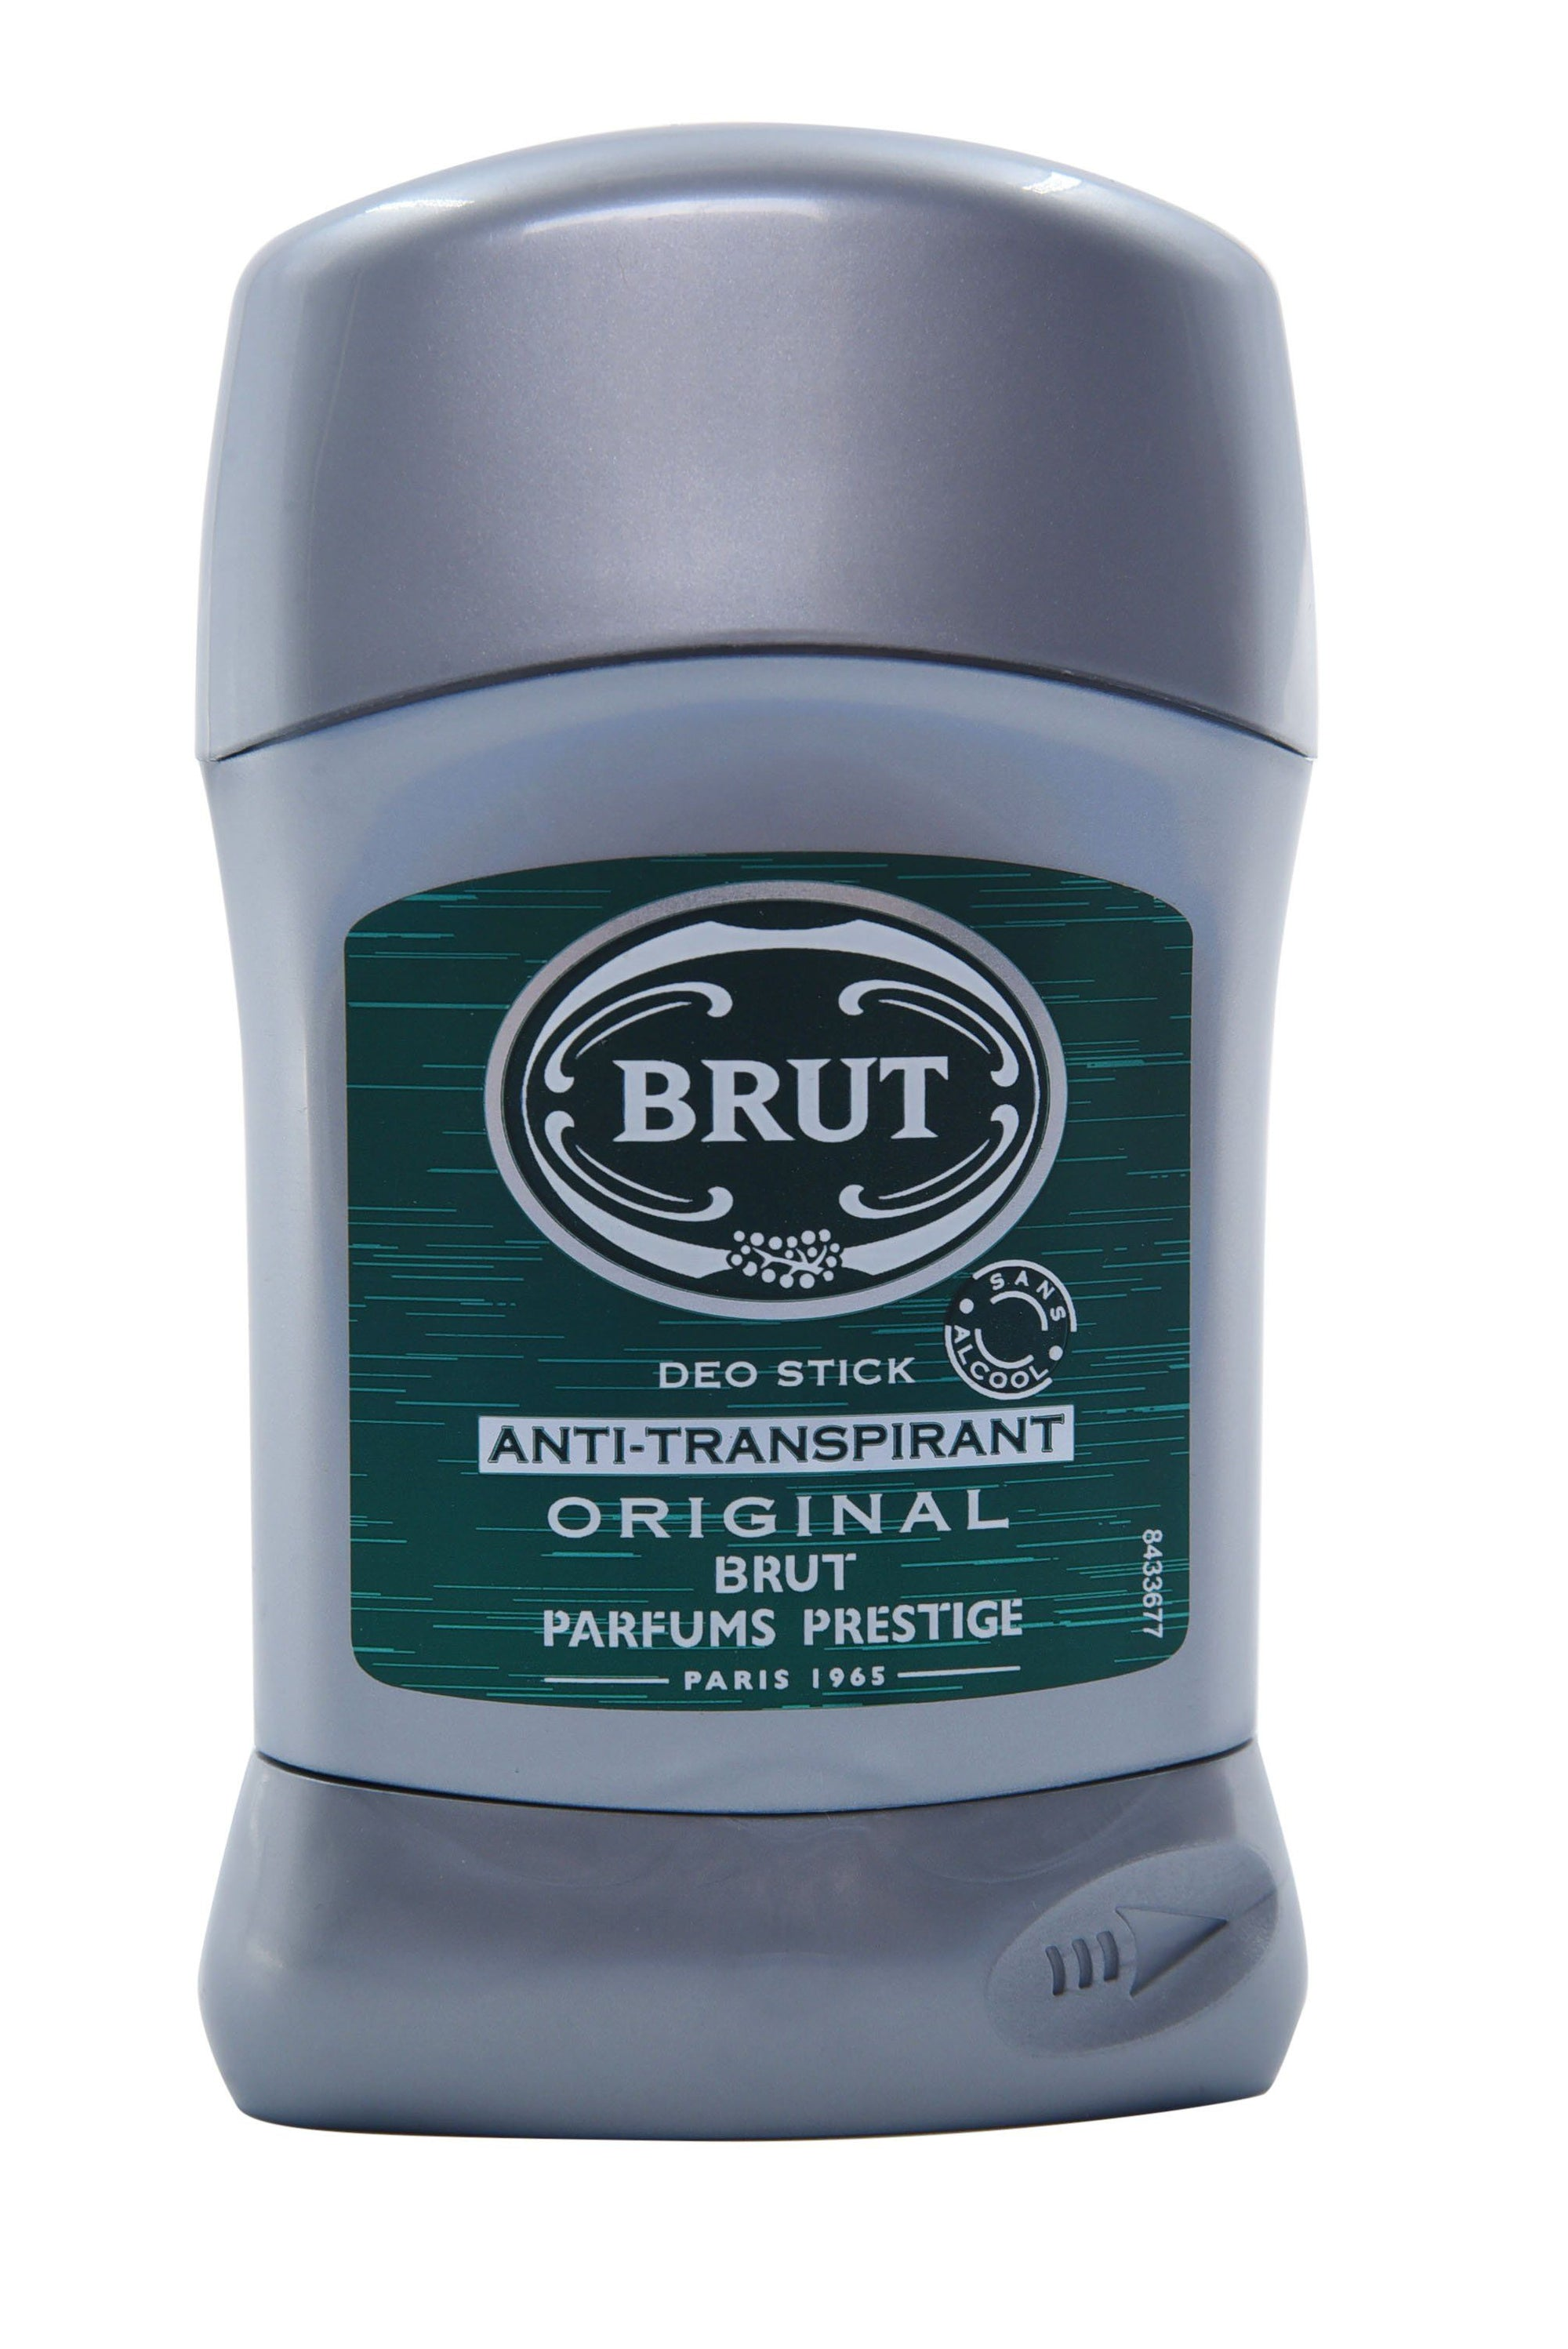 Brut Deodorant Stick AP Original 50ml - Pack of 6